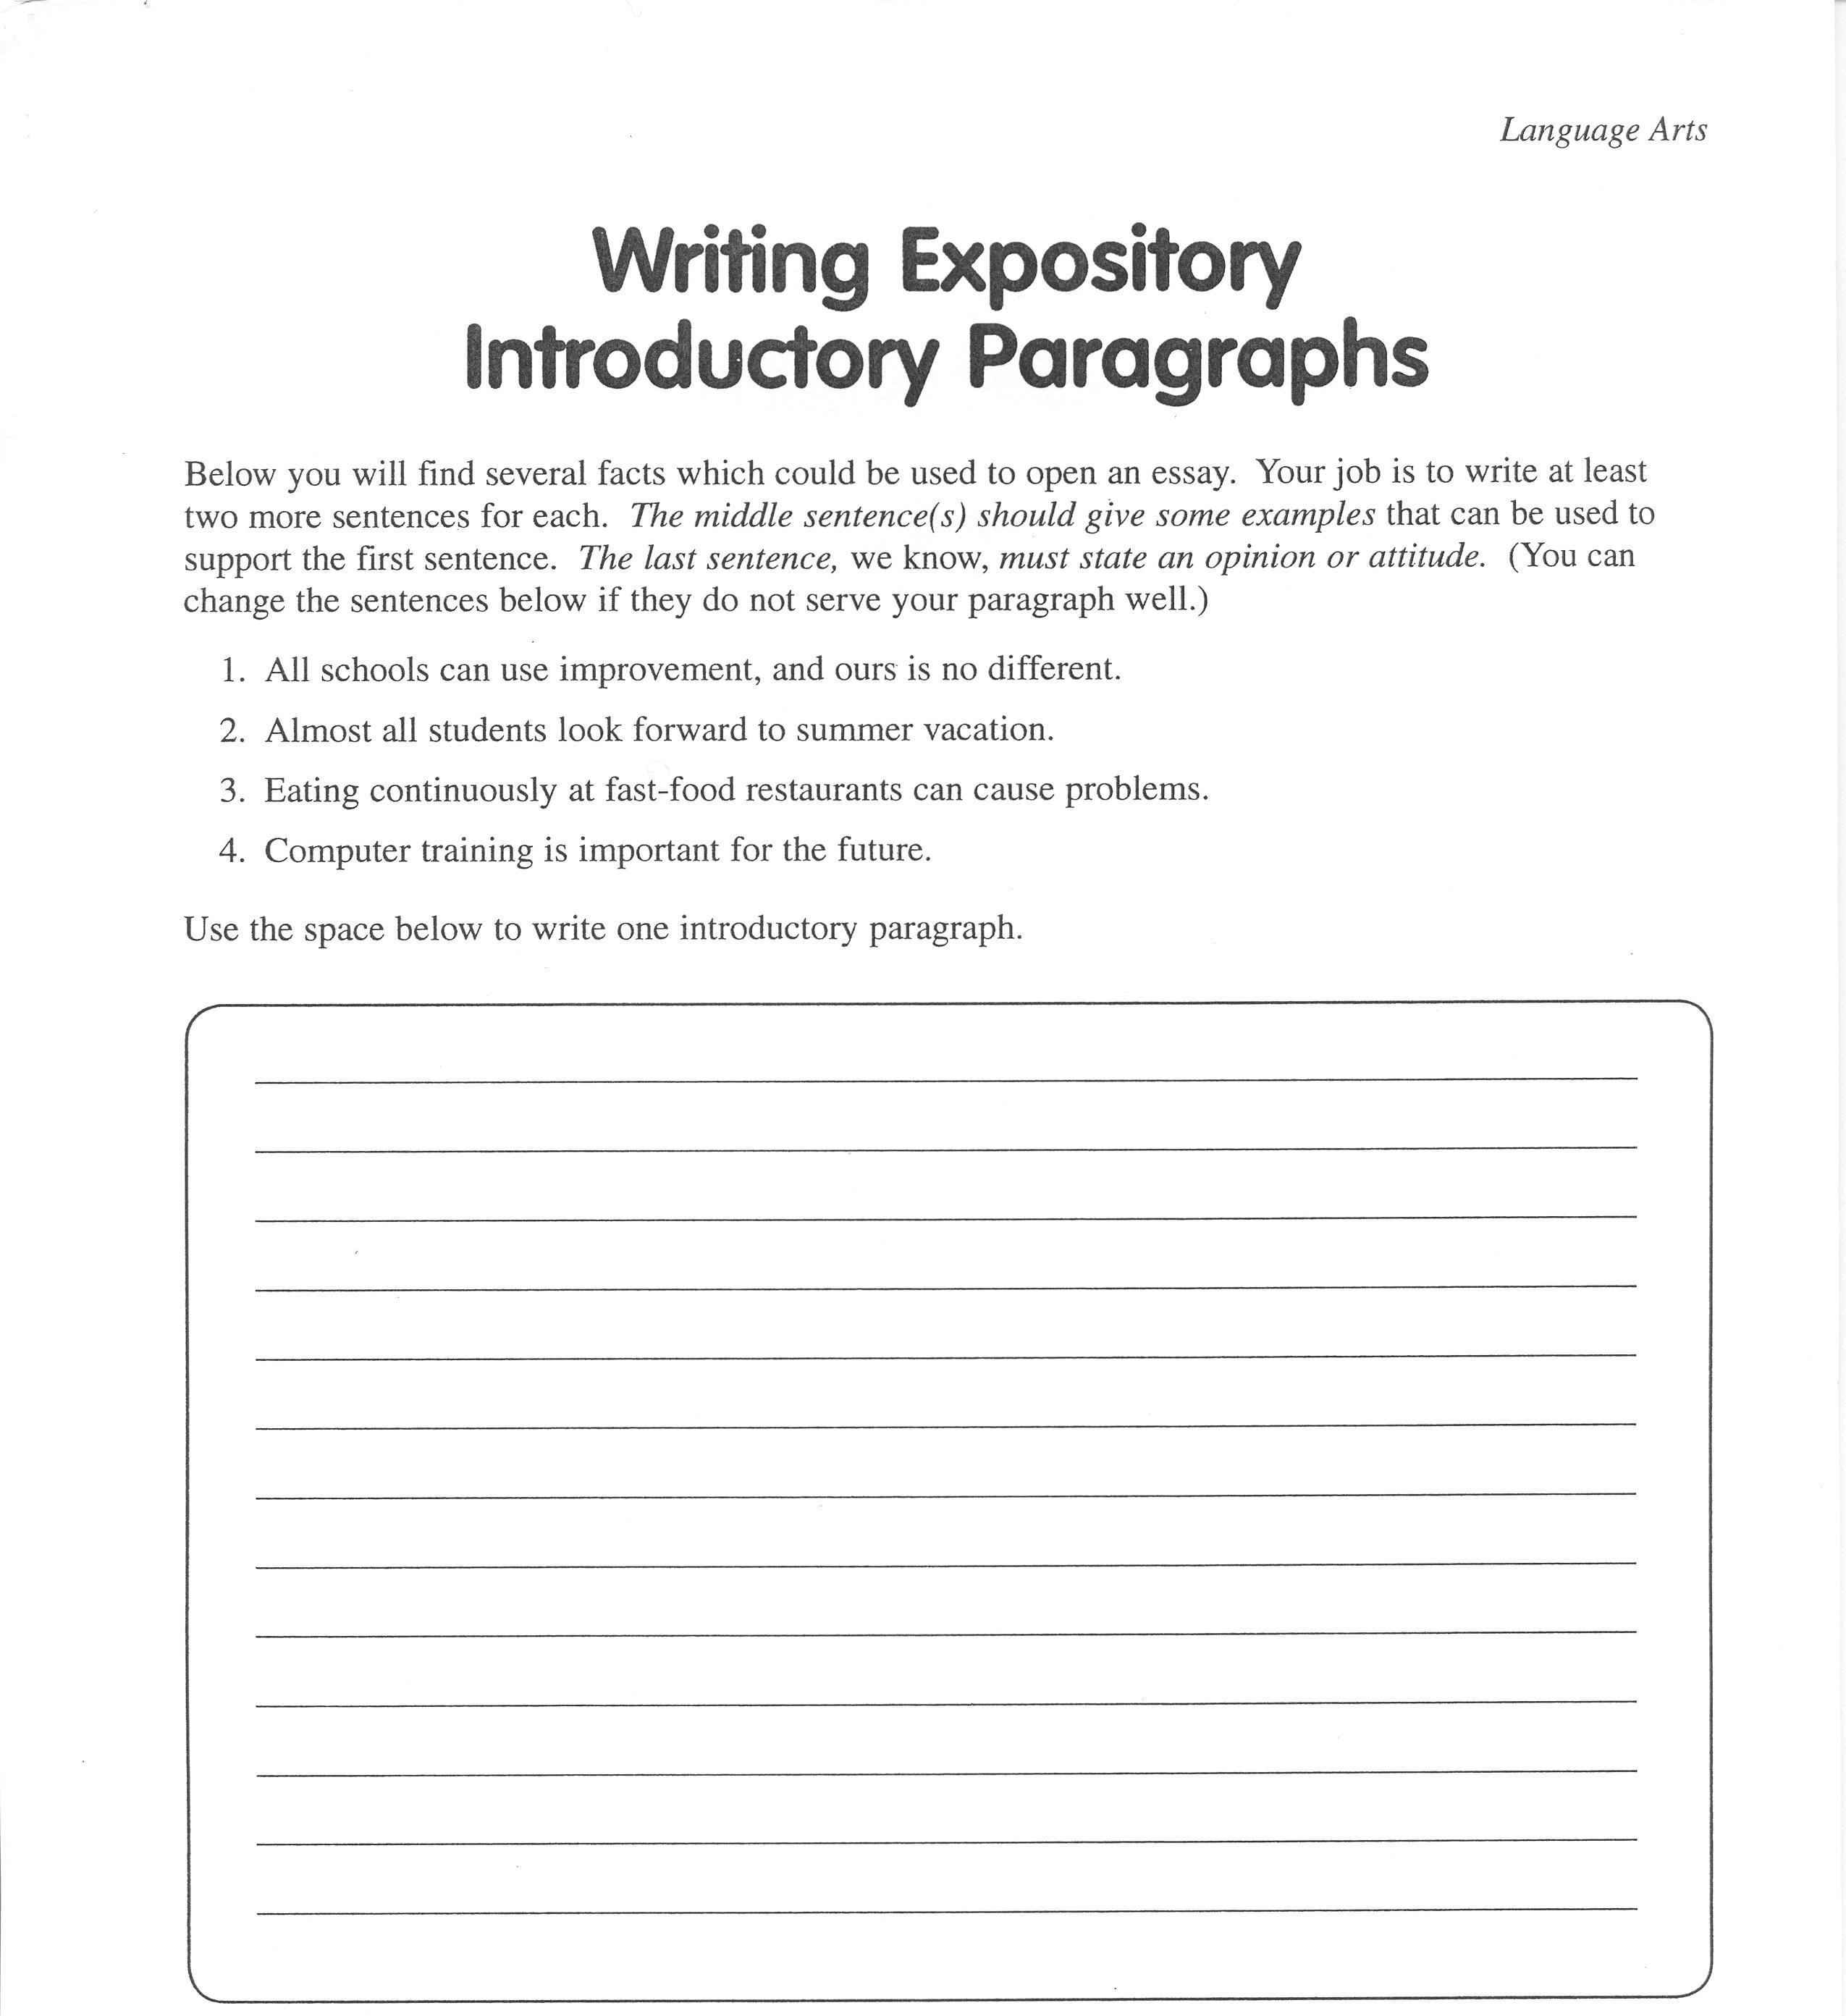 010 Writing20expository20introductory20paragraphs Intro Paragraph Essay Outstanding Example Introductory Argumentative Introduction Persuasive Compare Contrast Examples Full